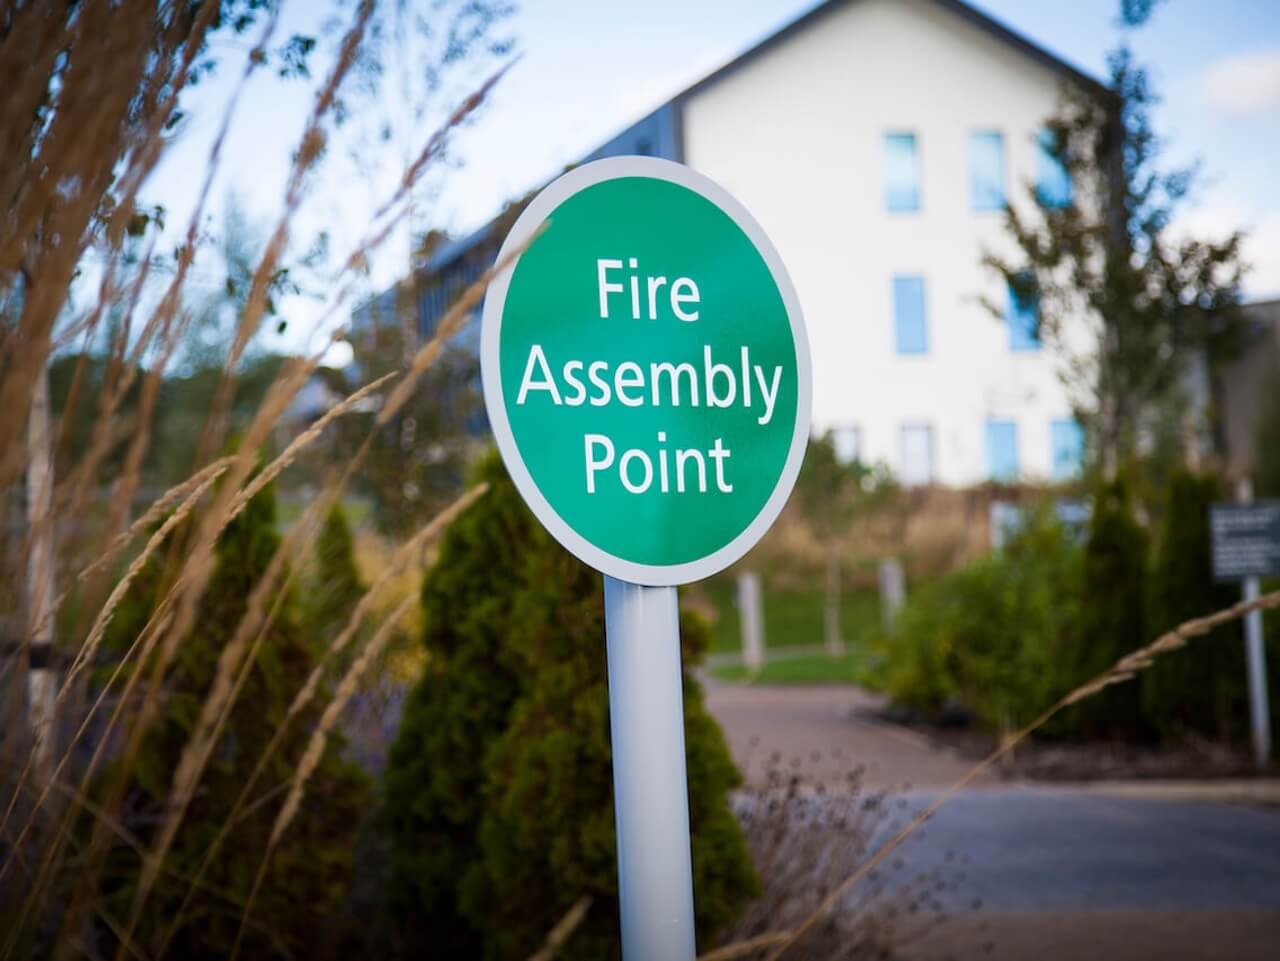 External fire assembly point signage